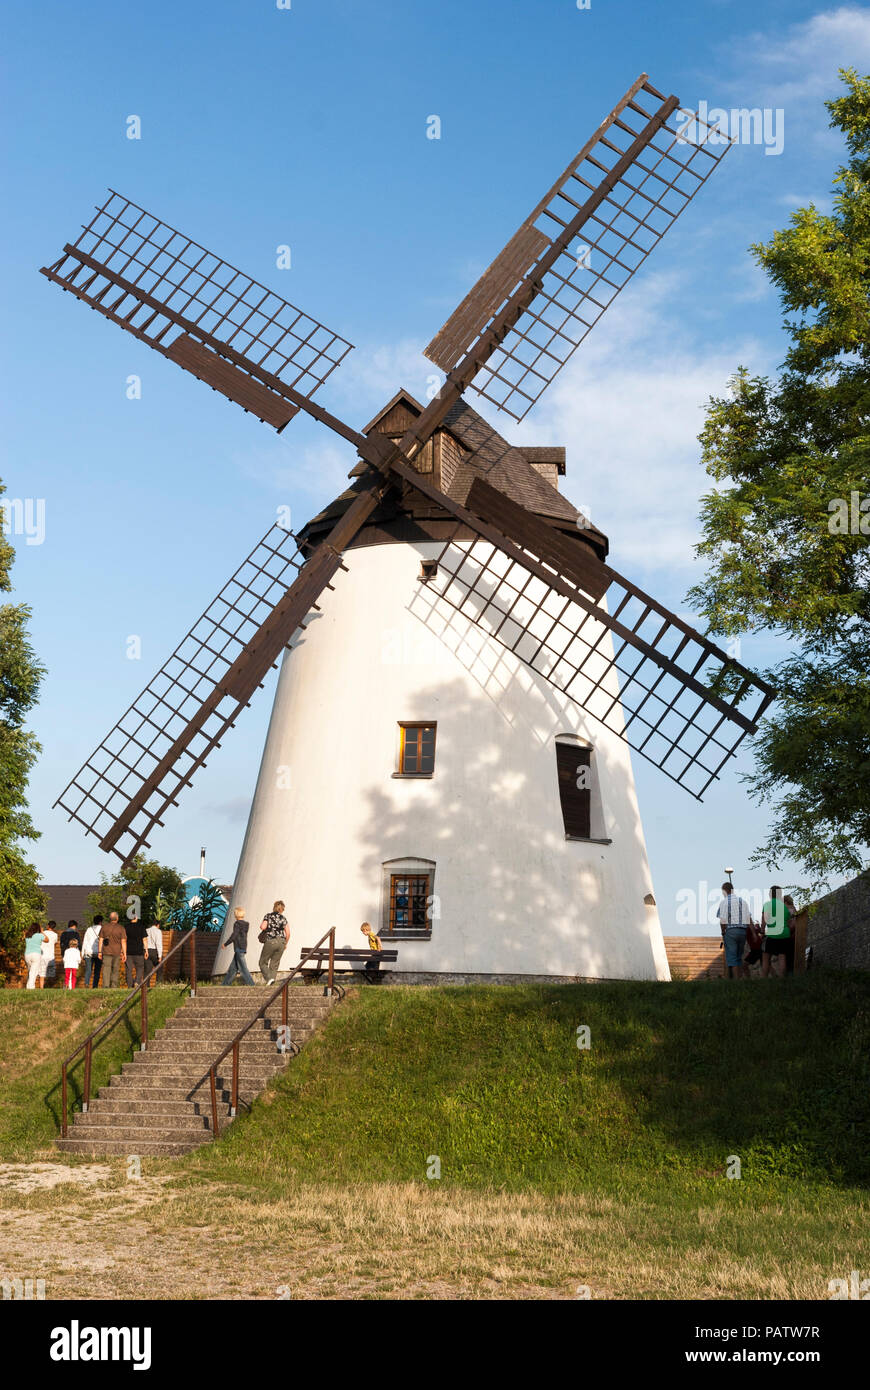 Tourists at a traditional windmill at Podersdorf am See, Neusiedler See, Burgenland, Austria - Stock Image